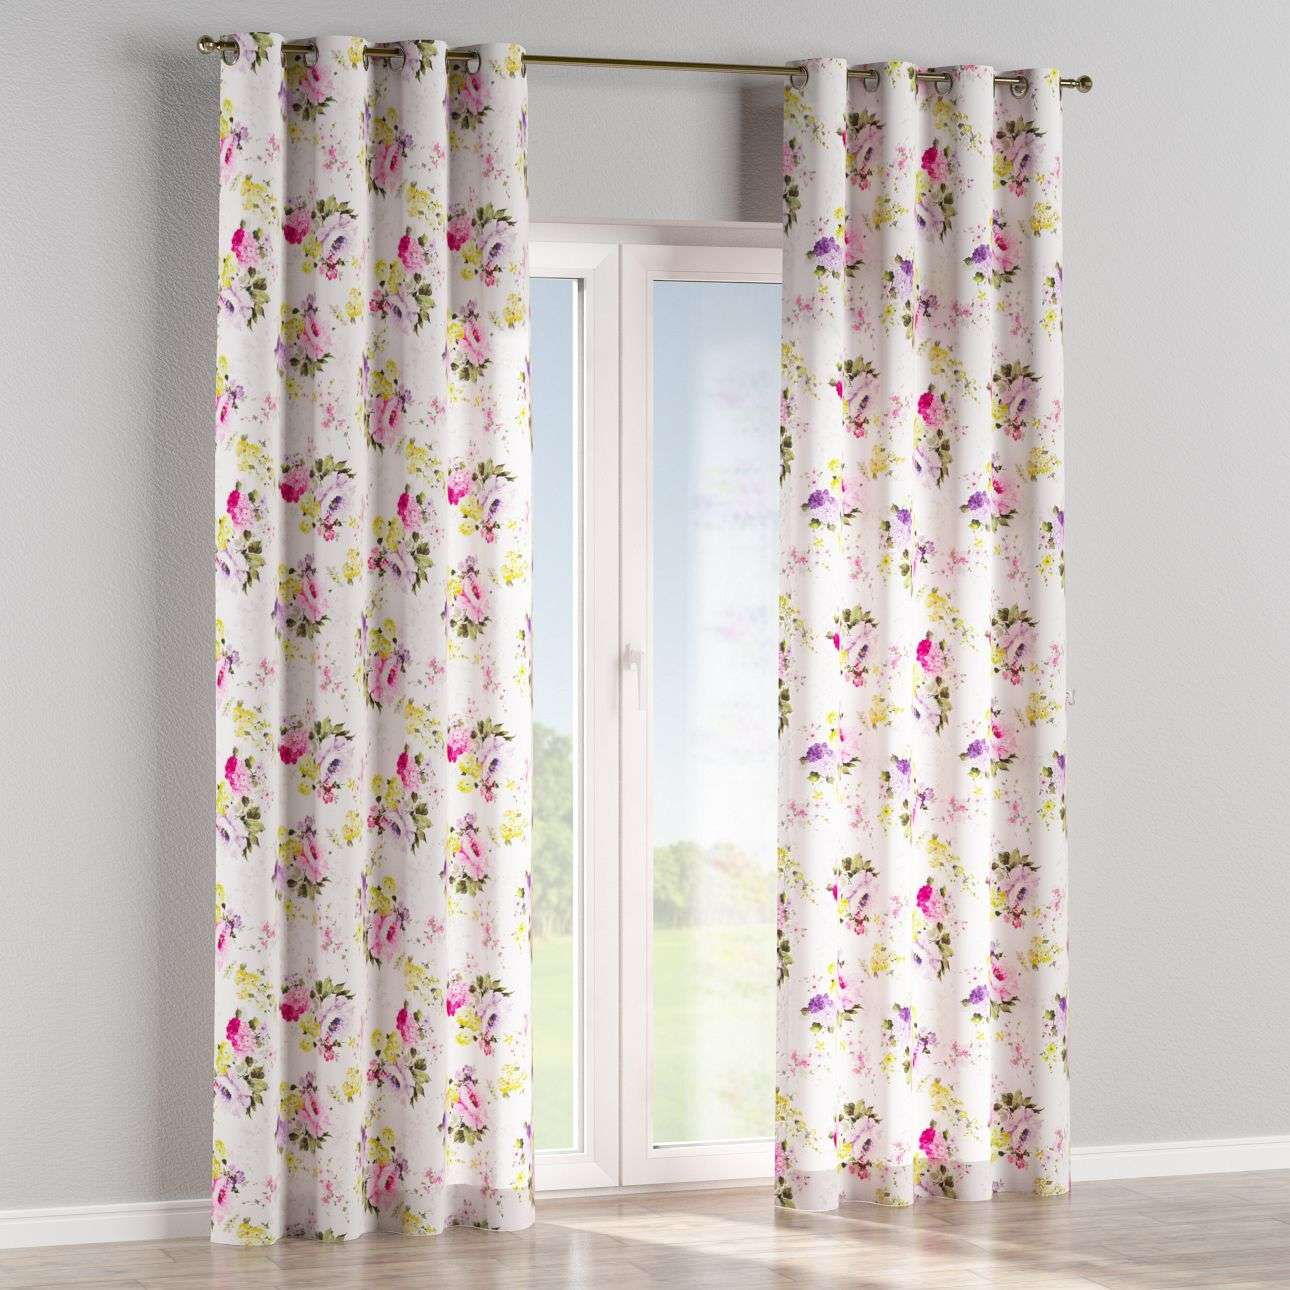 Eyelet curtains 130 x 260 cm (51 x 102 inch) in collection Monet, fabric: 140-00